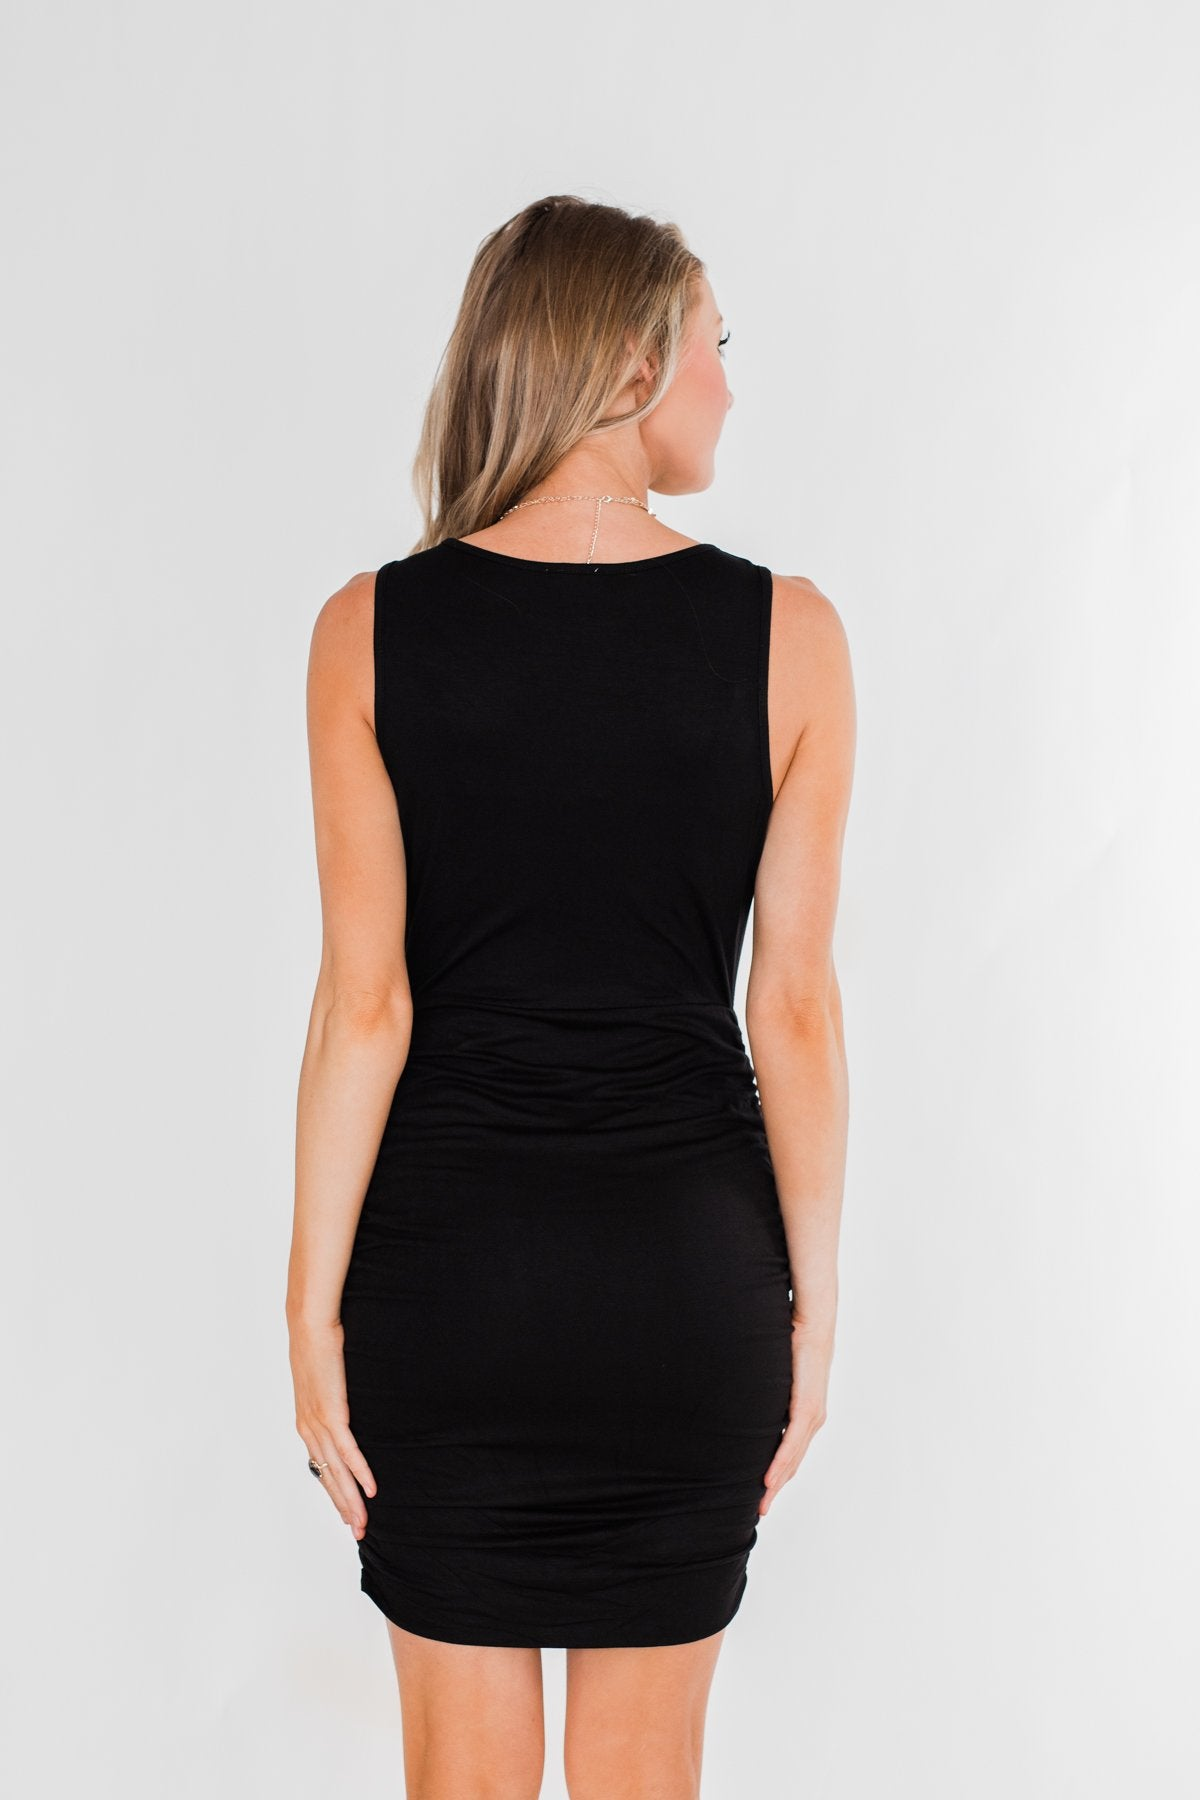 Simple & Chic Cinched Fitted Dress- Black